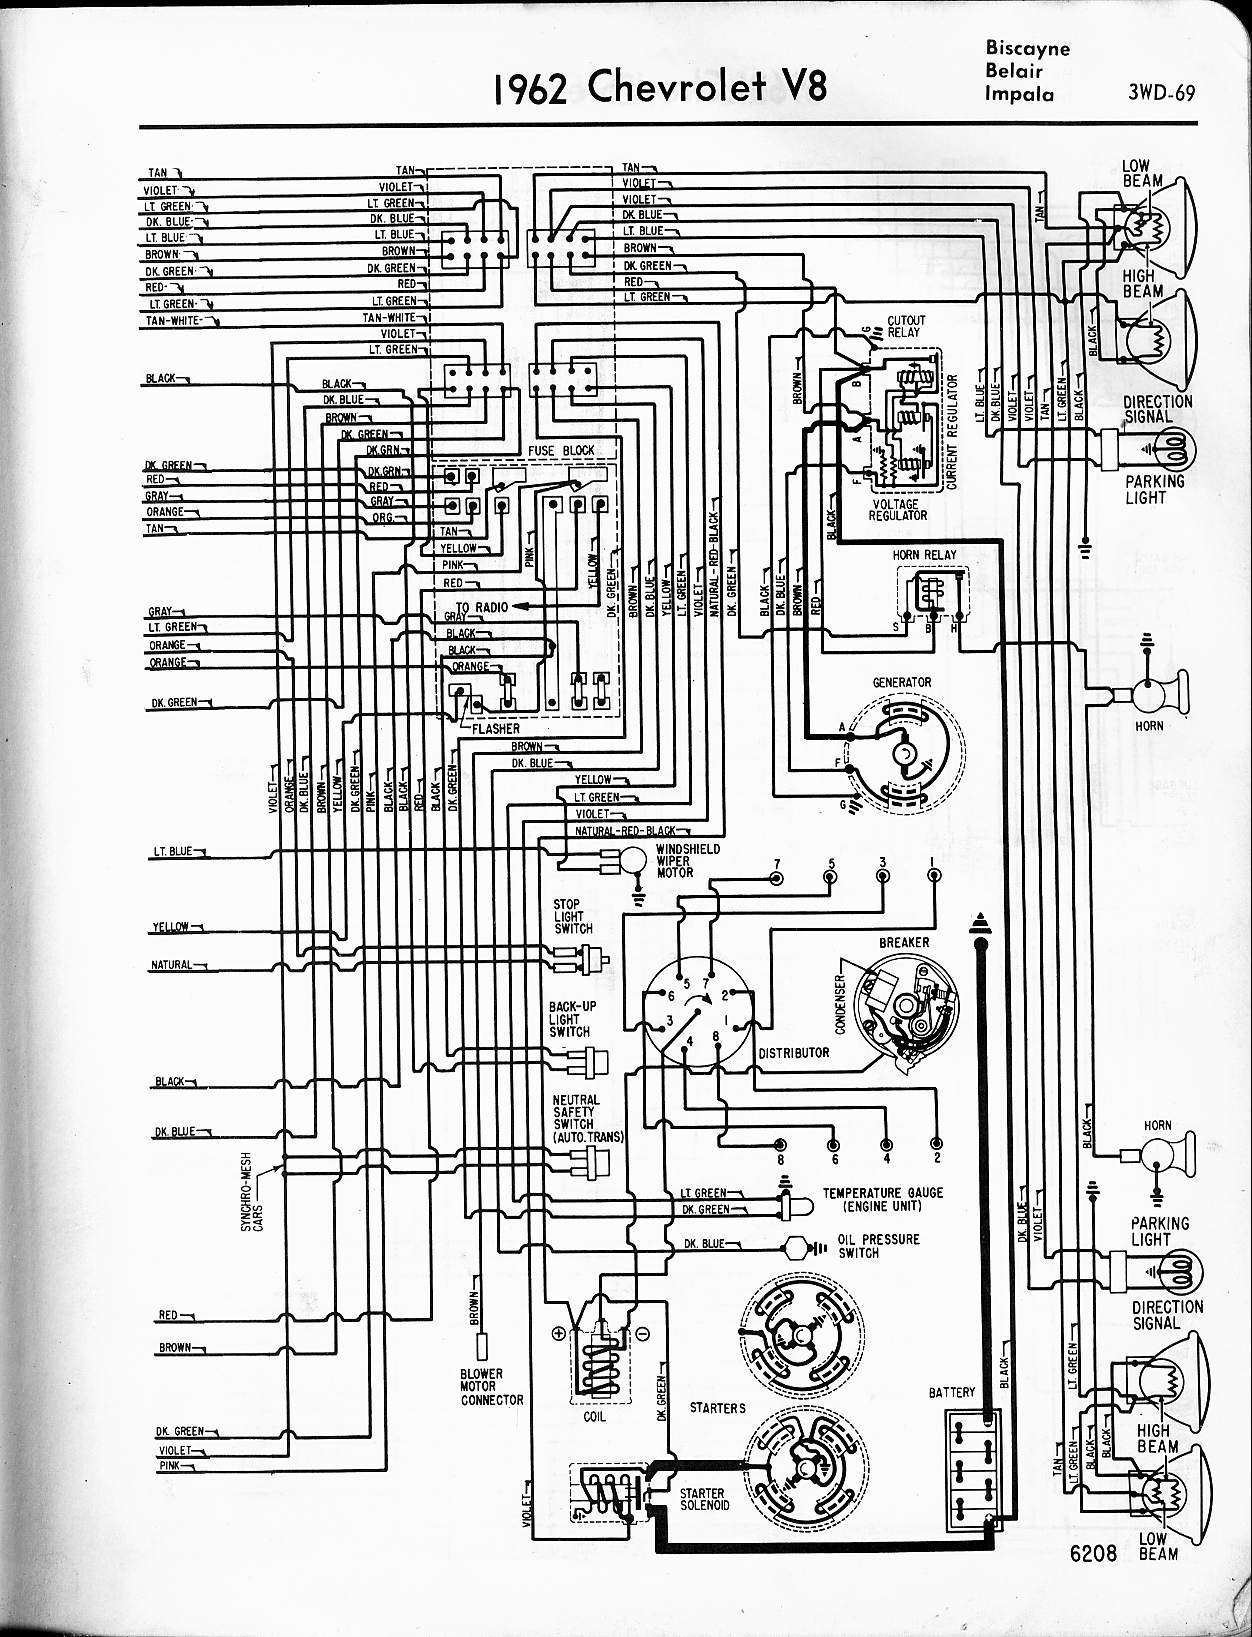 engine wiring diagrams clarion cmd4 diagram 57 65 chevy 1962 v8 biscayne belair impala right